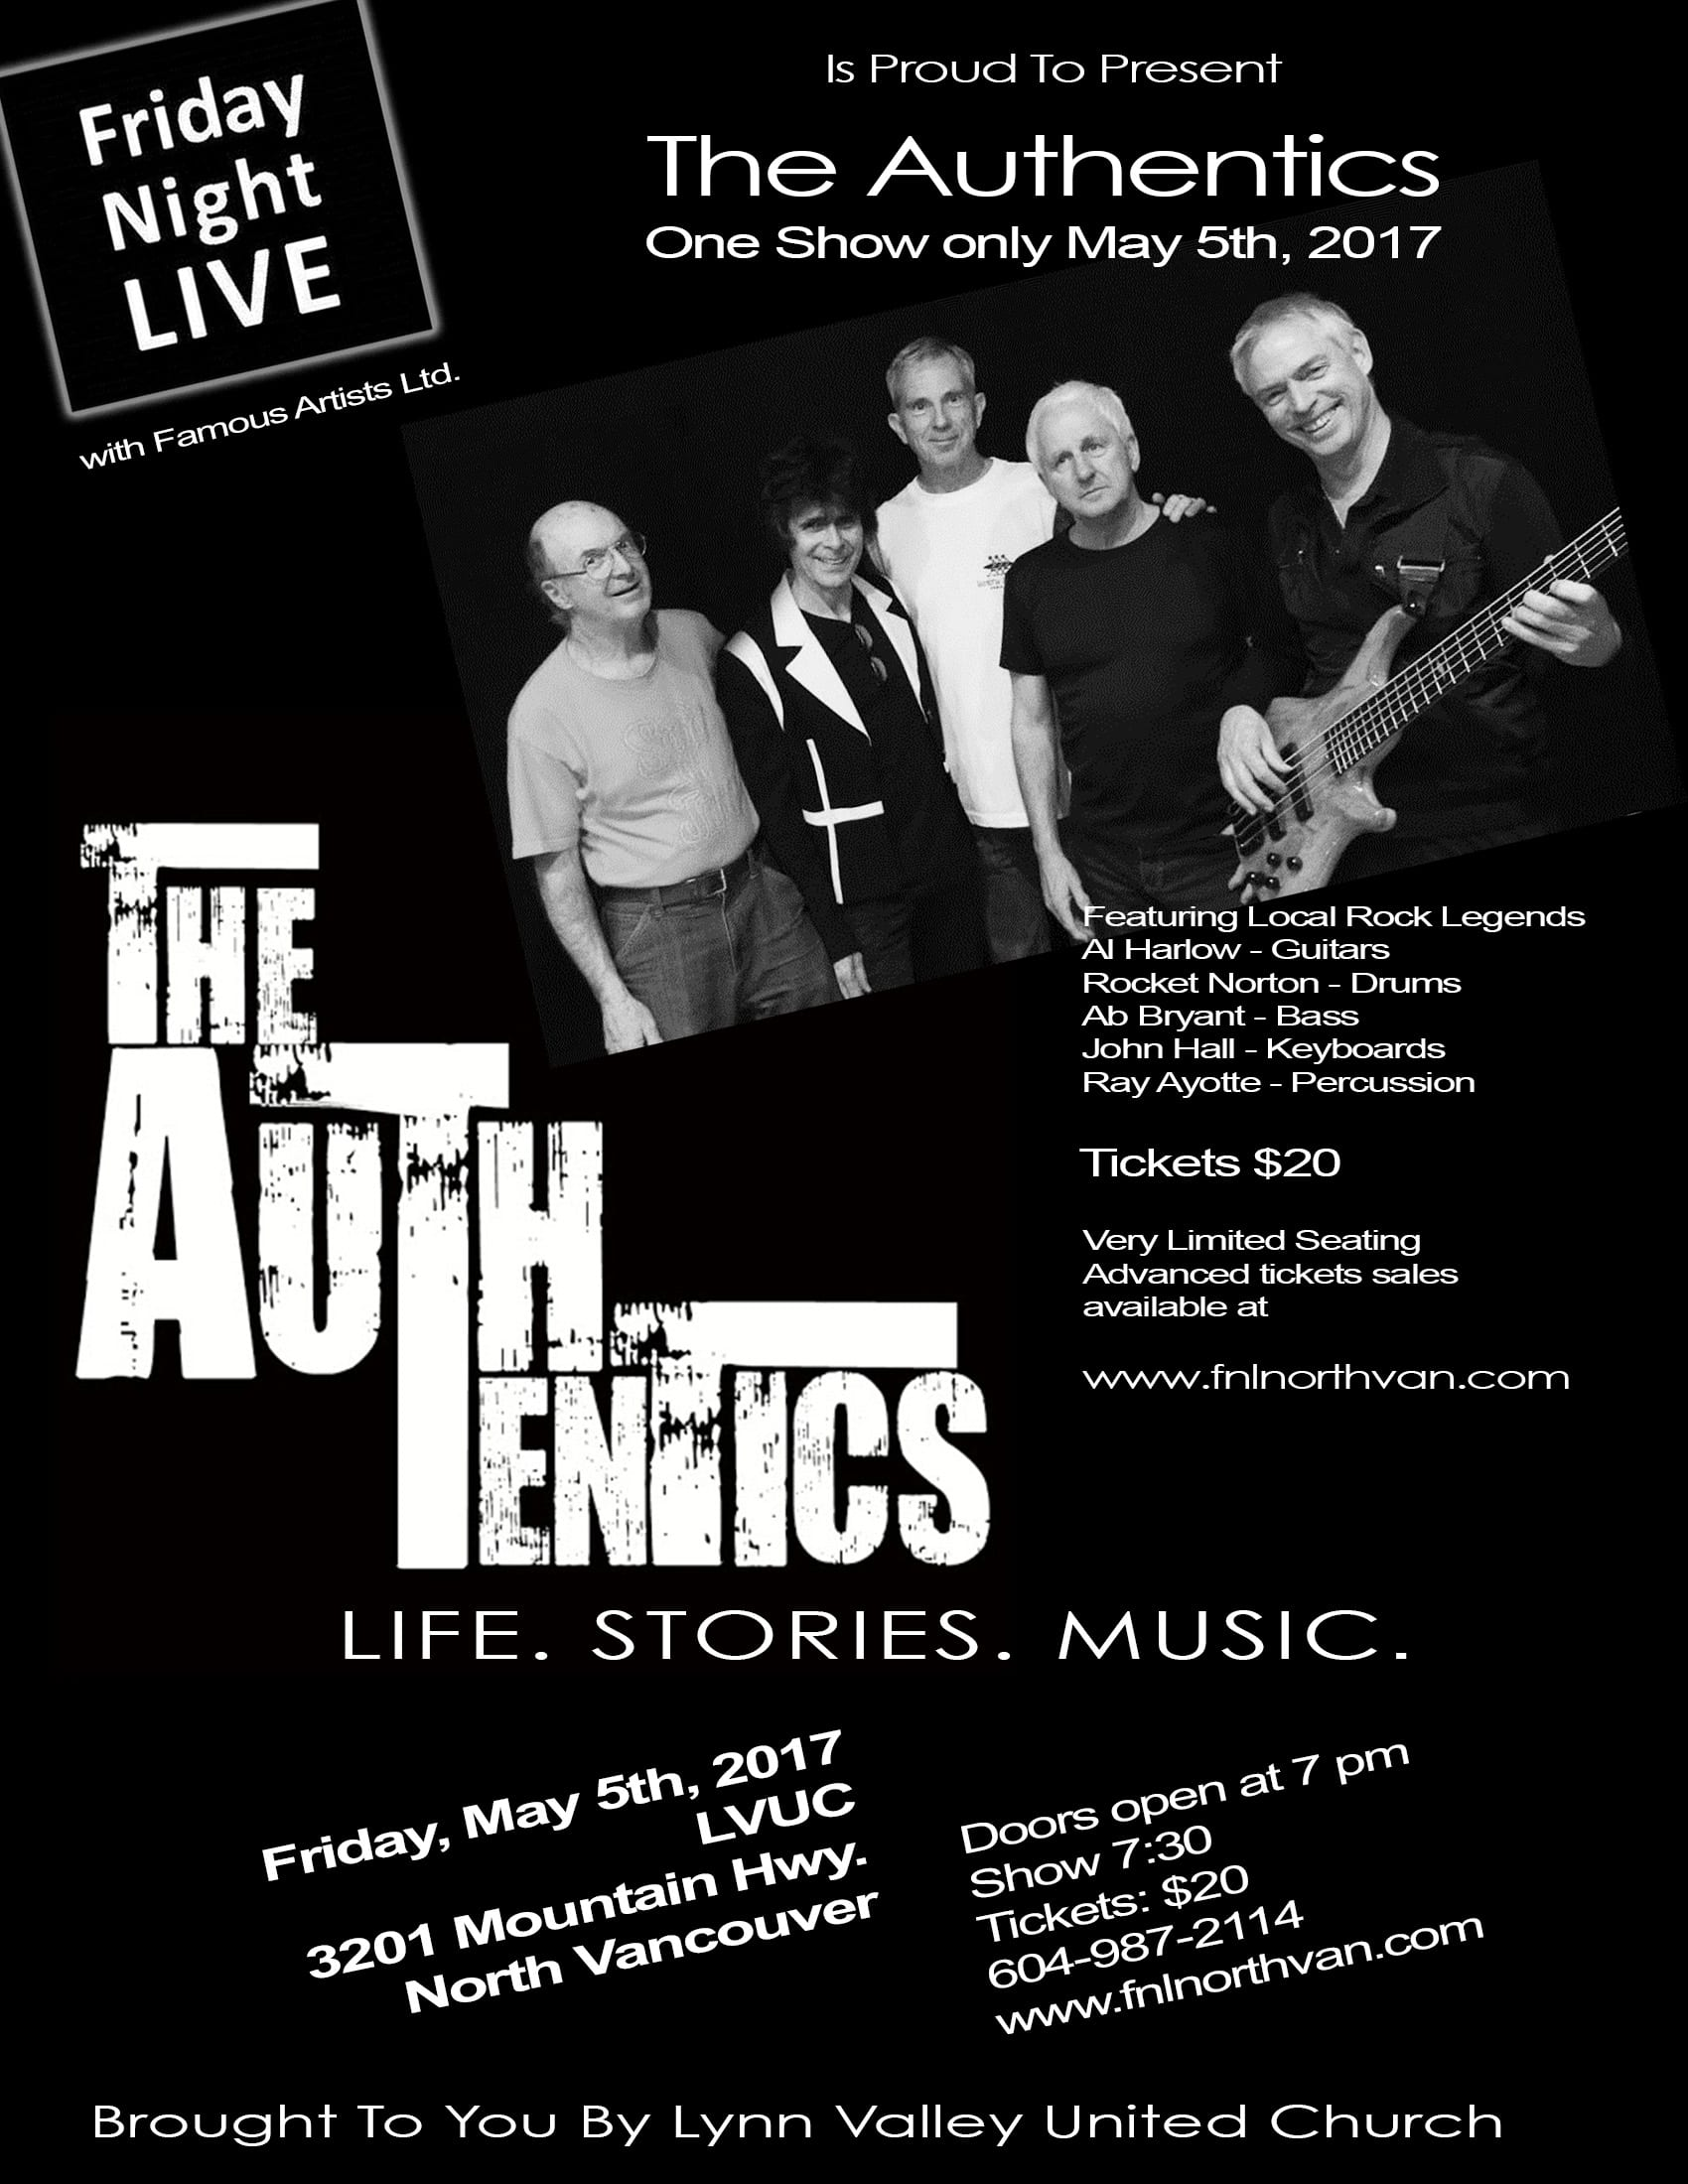 Friday Night Live at the Lynn Valley United Church North Vancouver – The Authentics